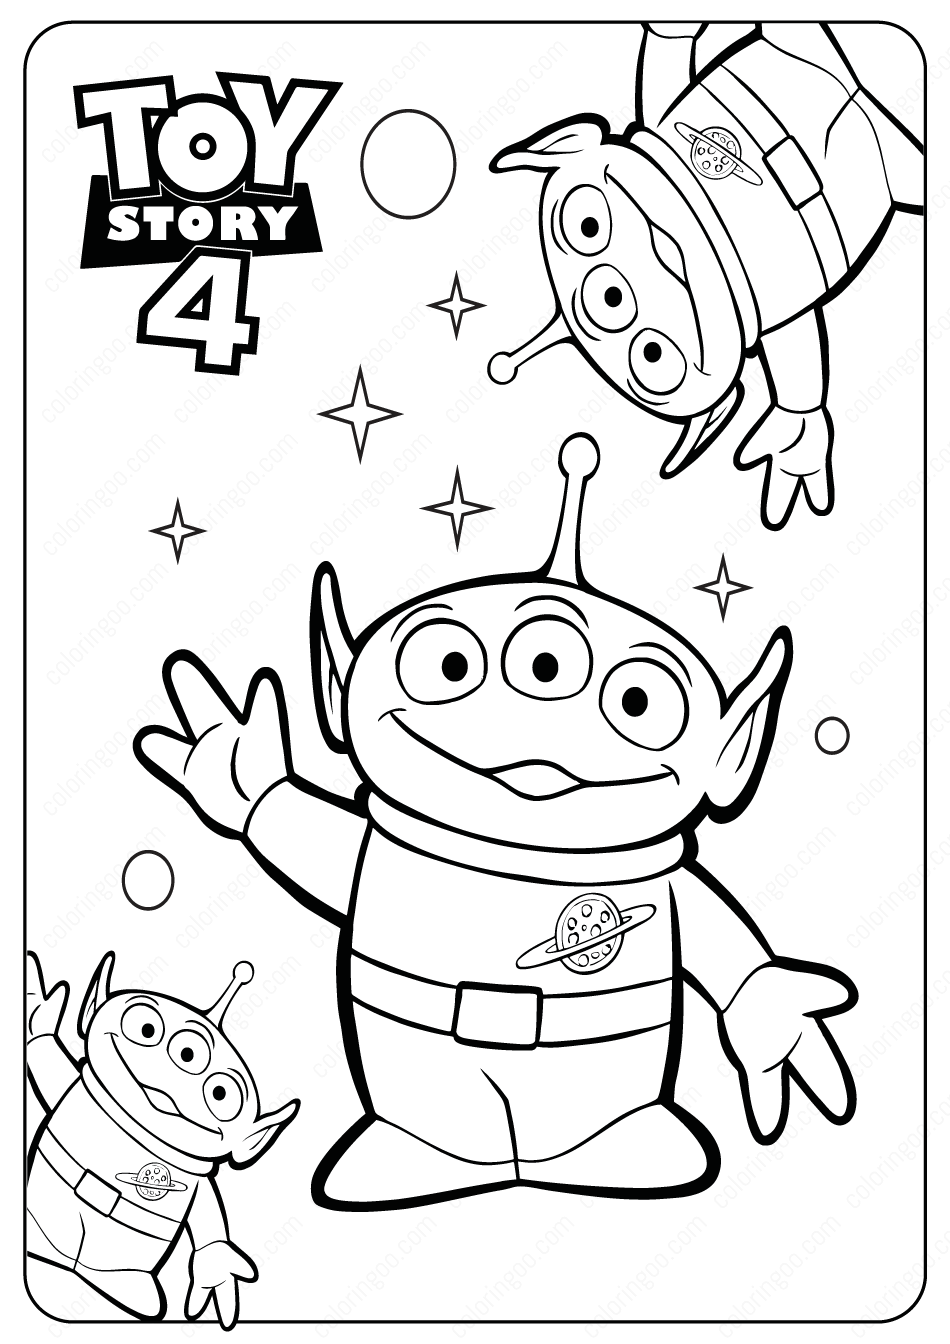 Free Printable Toy Story Aliens Pdf Coloring Pages 1 Toy Story Coloring Pages Disney Coloring Pages Toy Story Printables